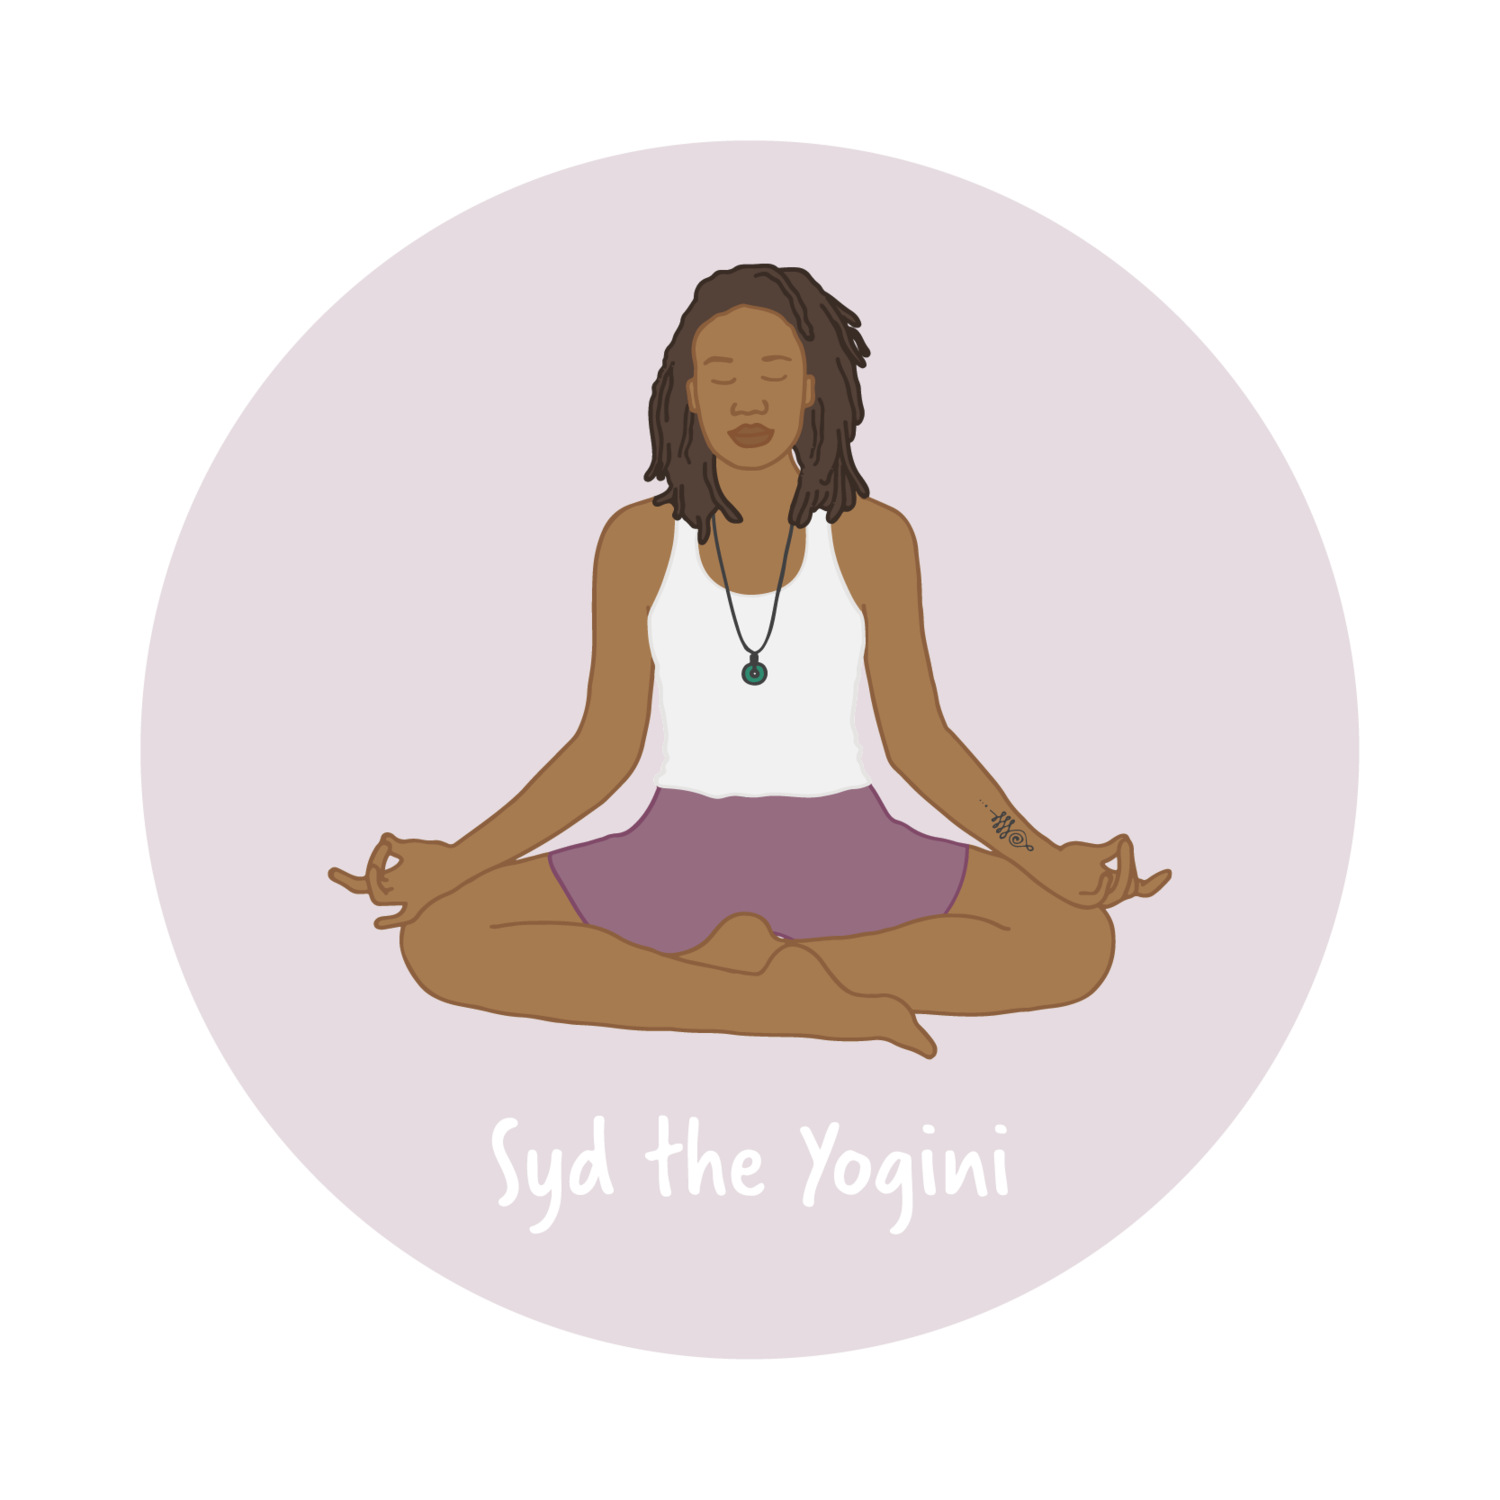 The yogini home. Syd transparent clipart freeuse download